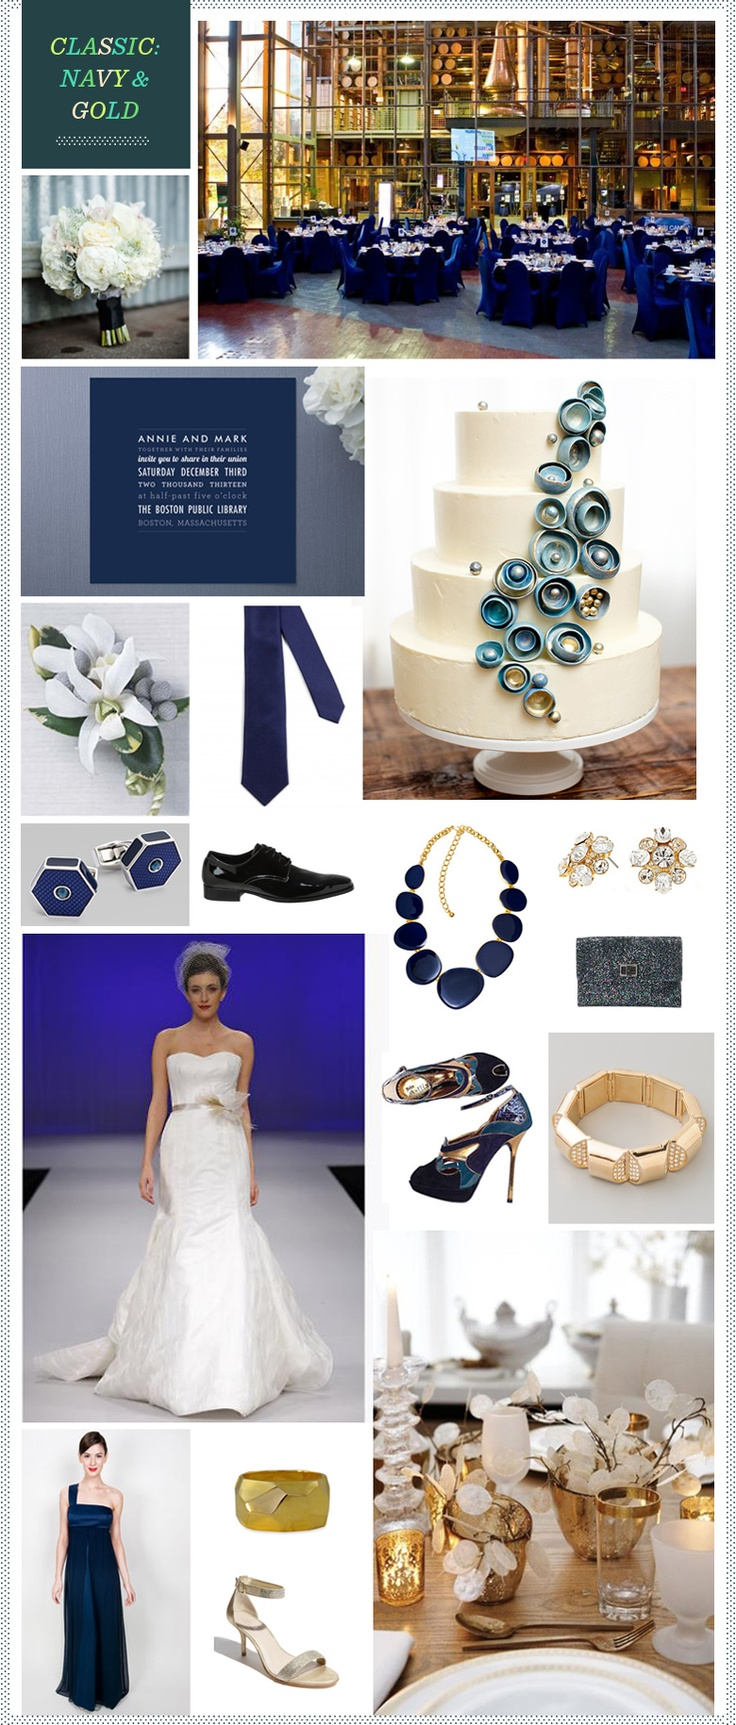 1000 images about The World of Cobalt blue on Pinterest  Cobalt blue Gold wedding colors and